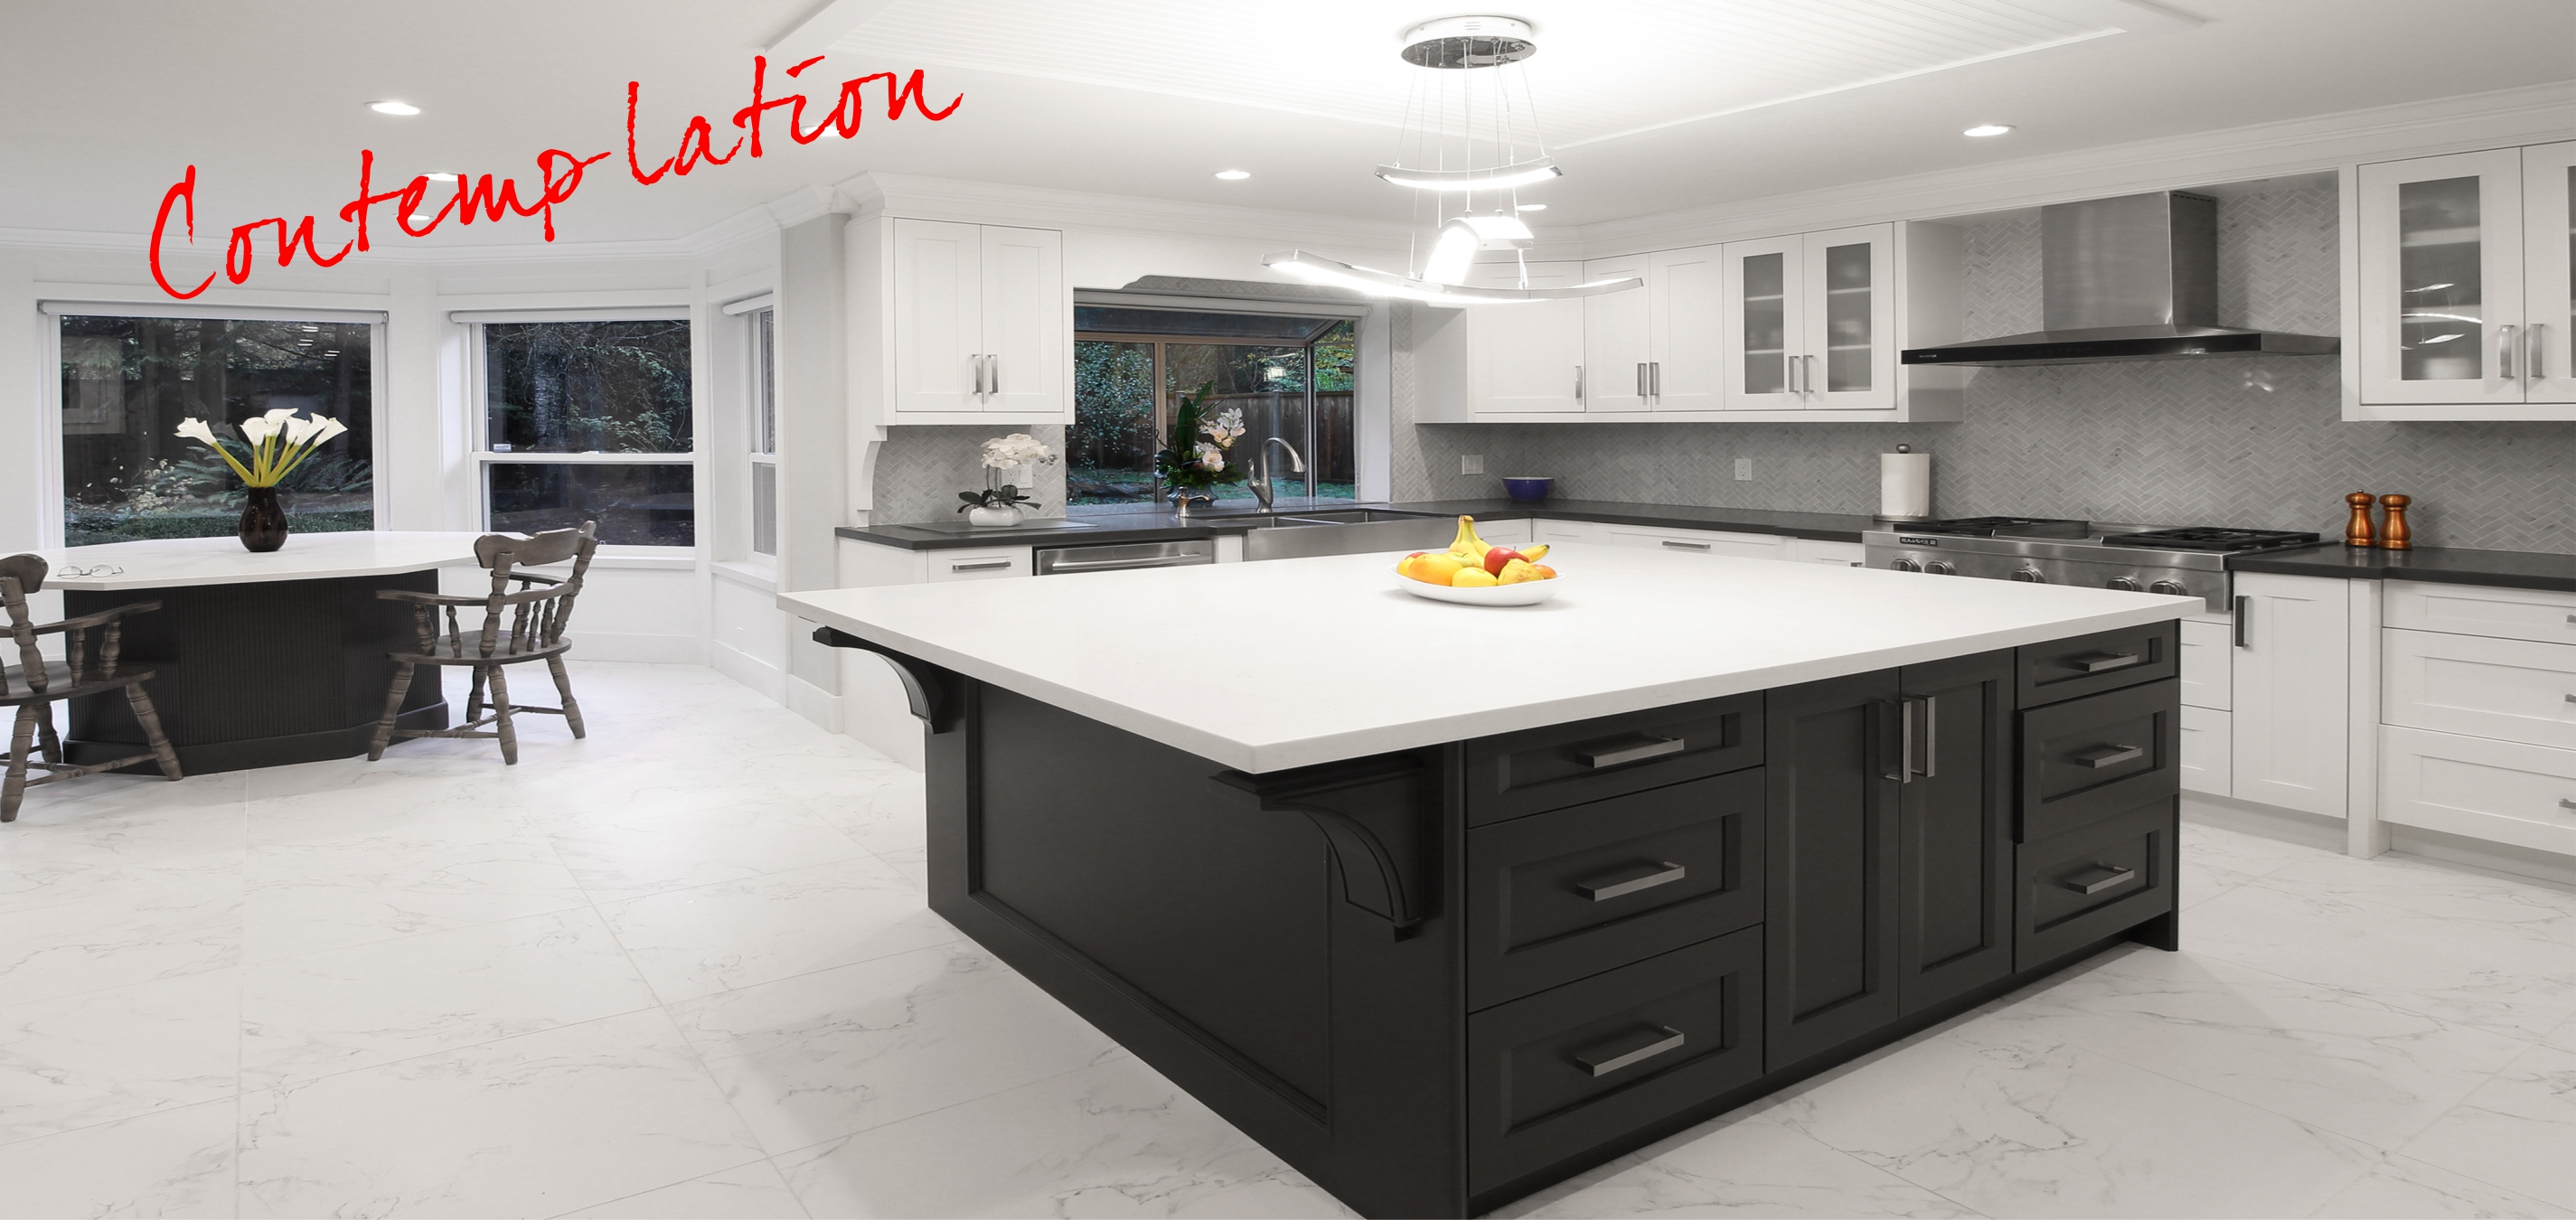 Contemp lation ultimate kitchens magazine for Ultimate kitchens